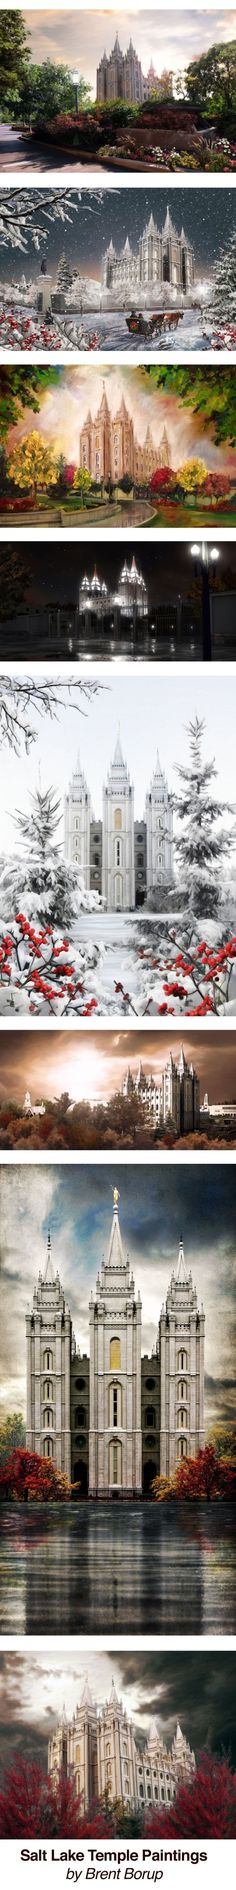 Beautiful Mormon Temples of The Church of Jesus Christ of Latter Day Saints.